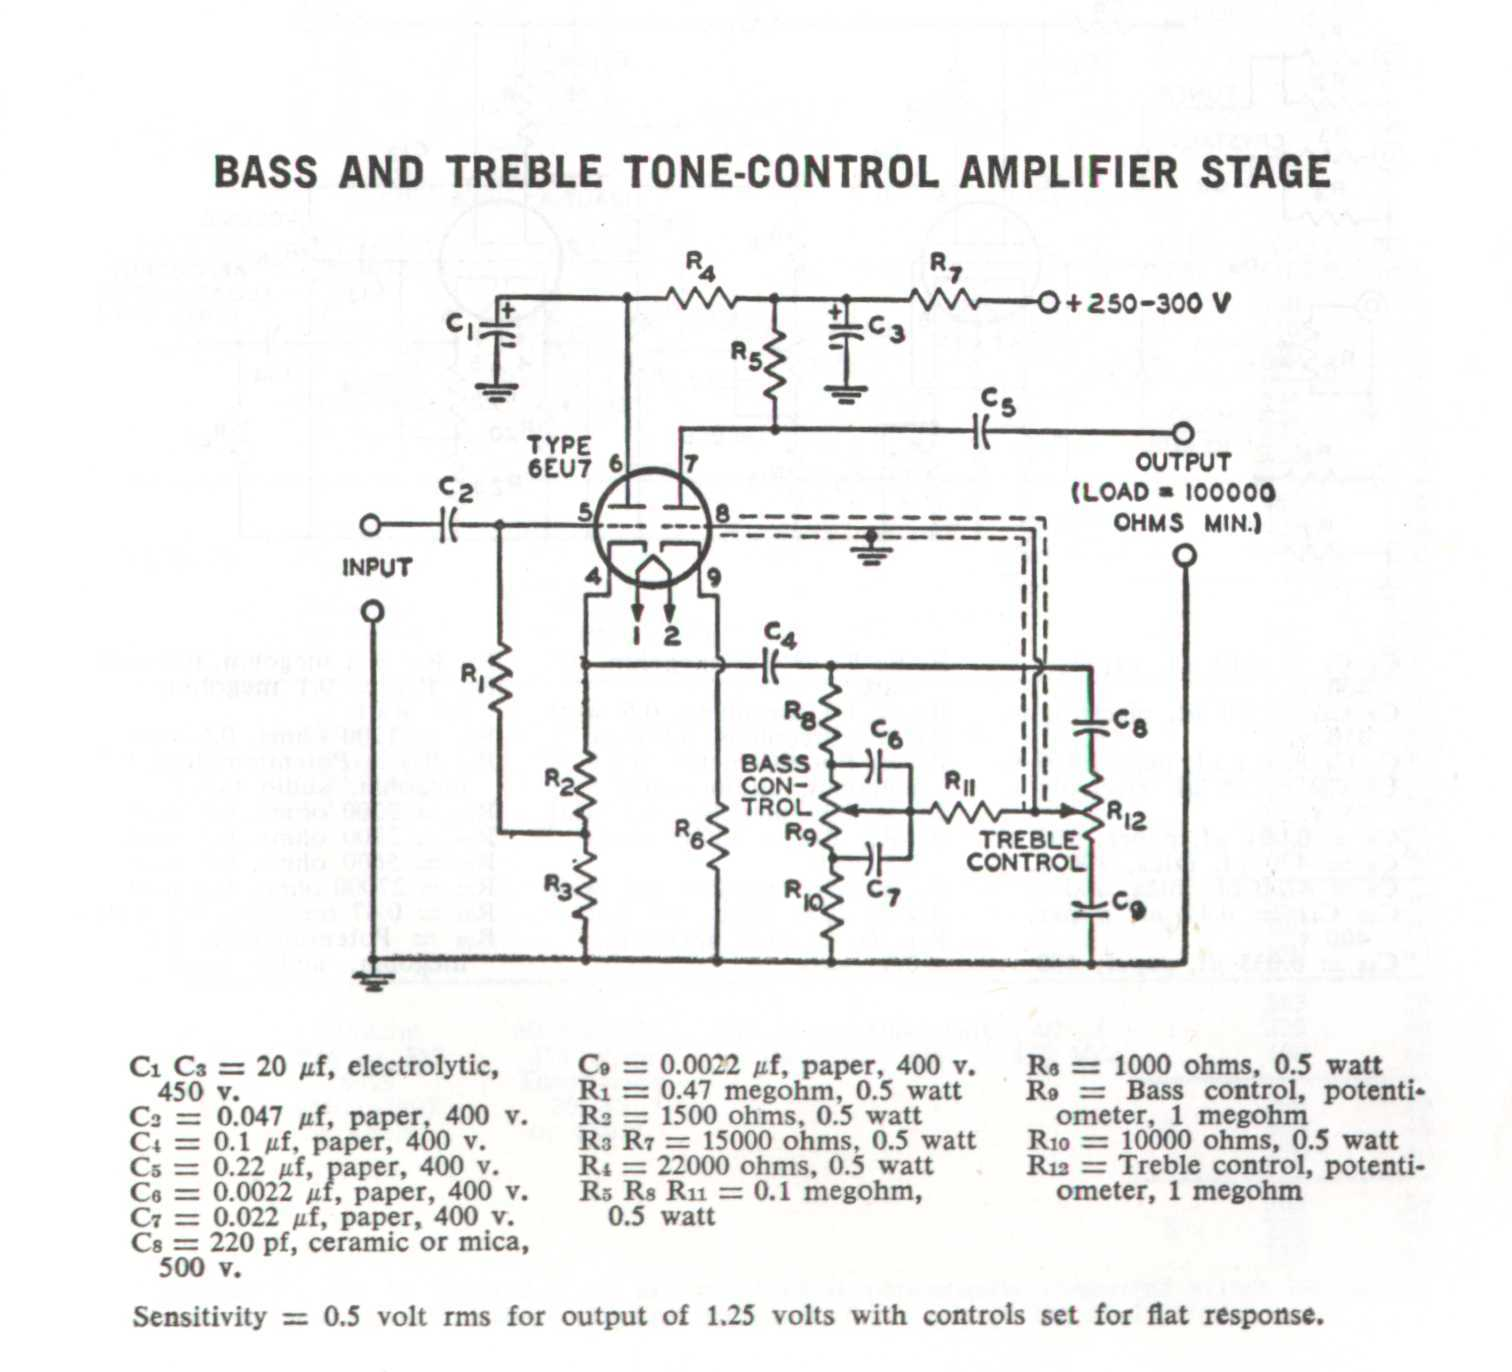 hight resolution of microphone preamp schematic diagram rca receiving tube manual c 1964 microphone preamp schematic diagram rca receiving tube manual c 1964